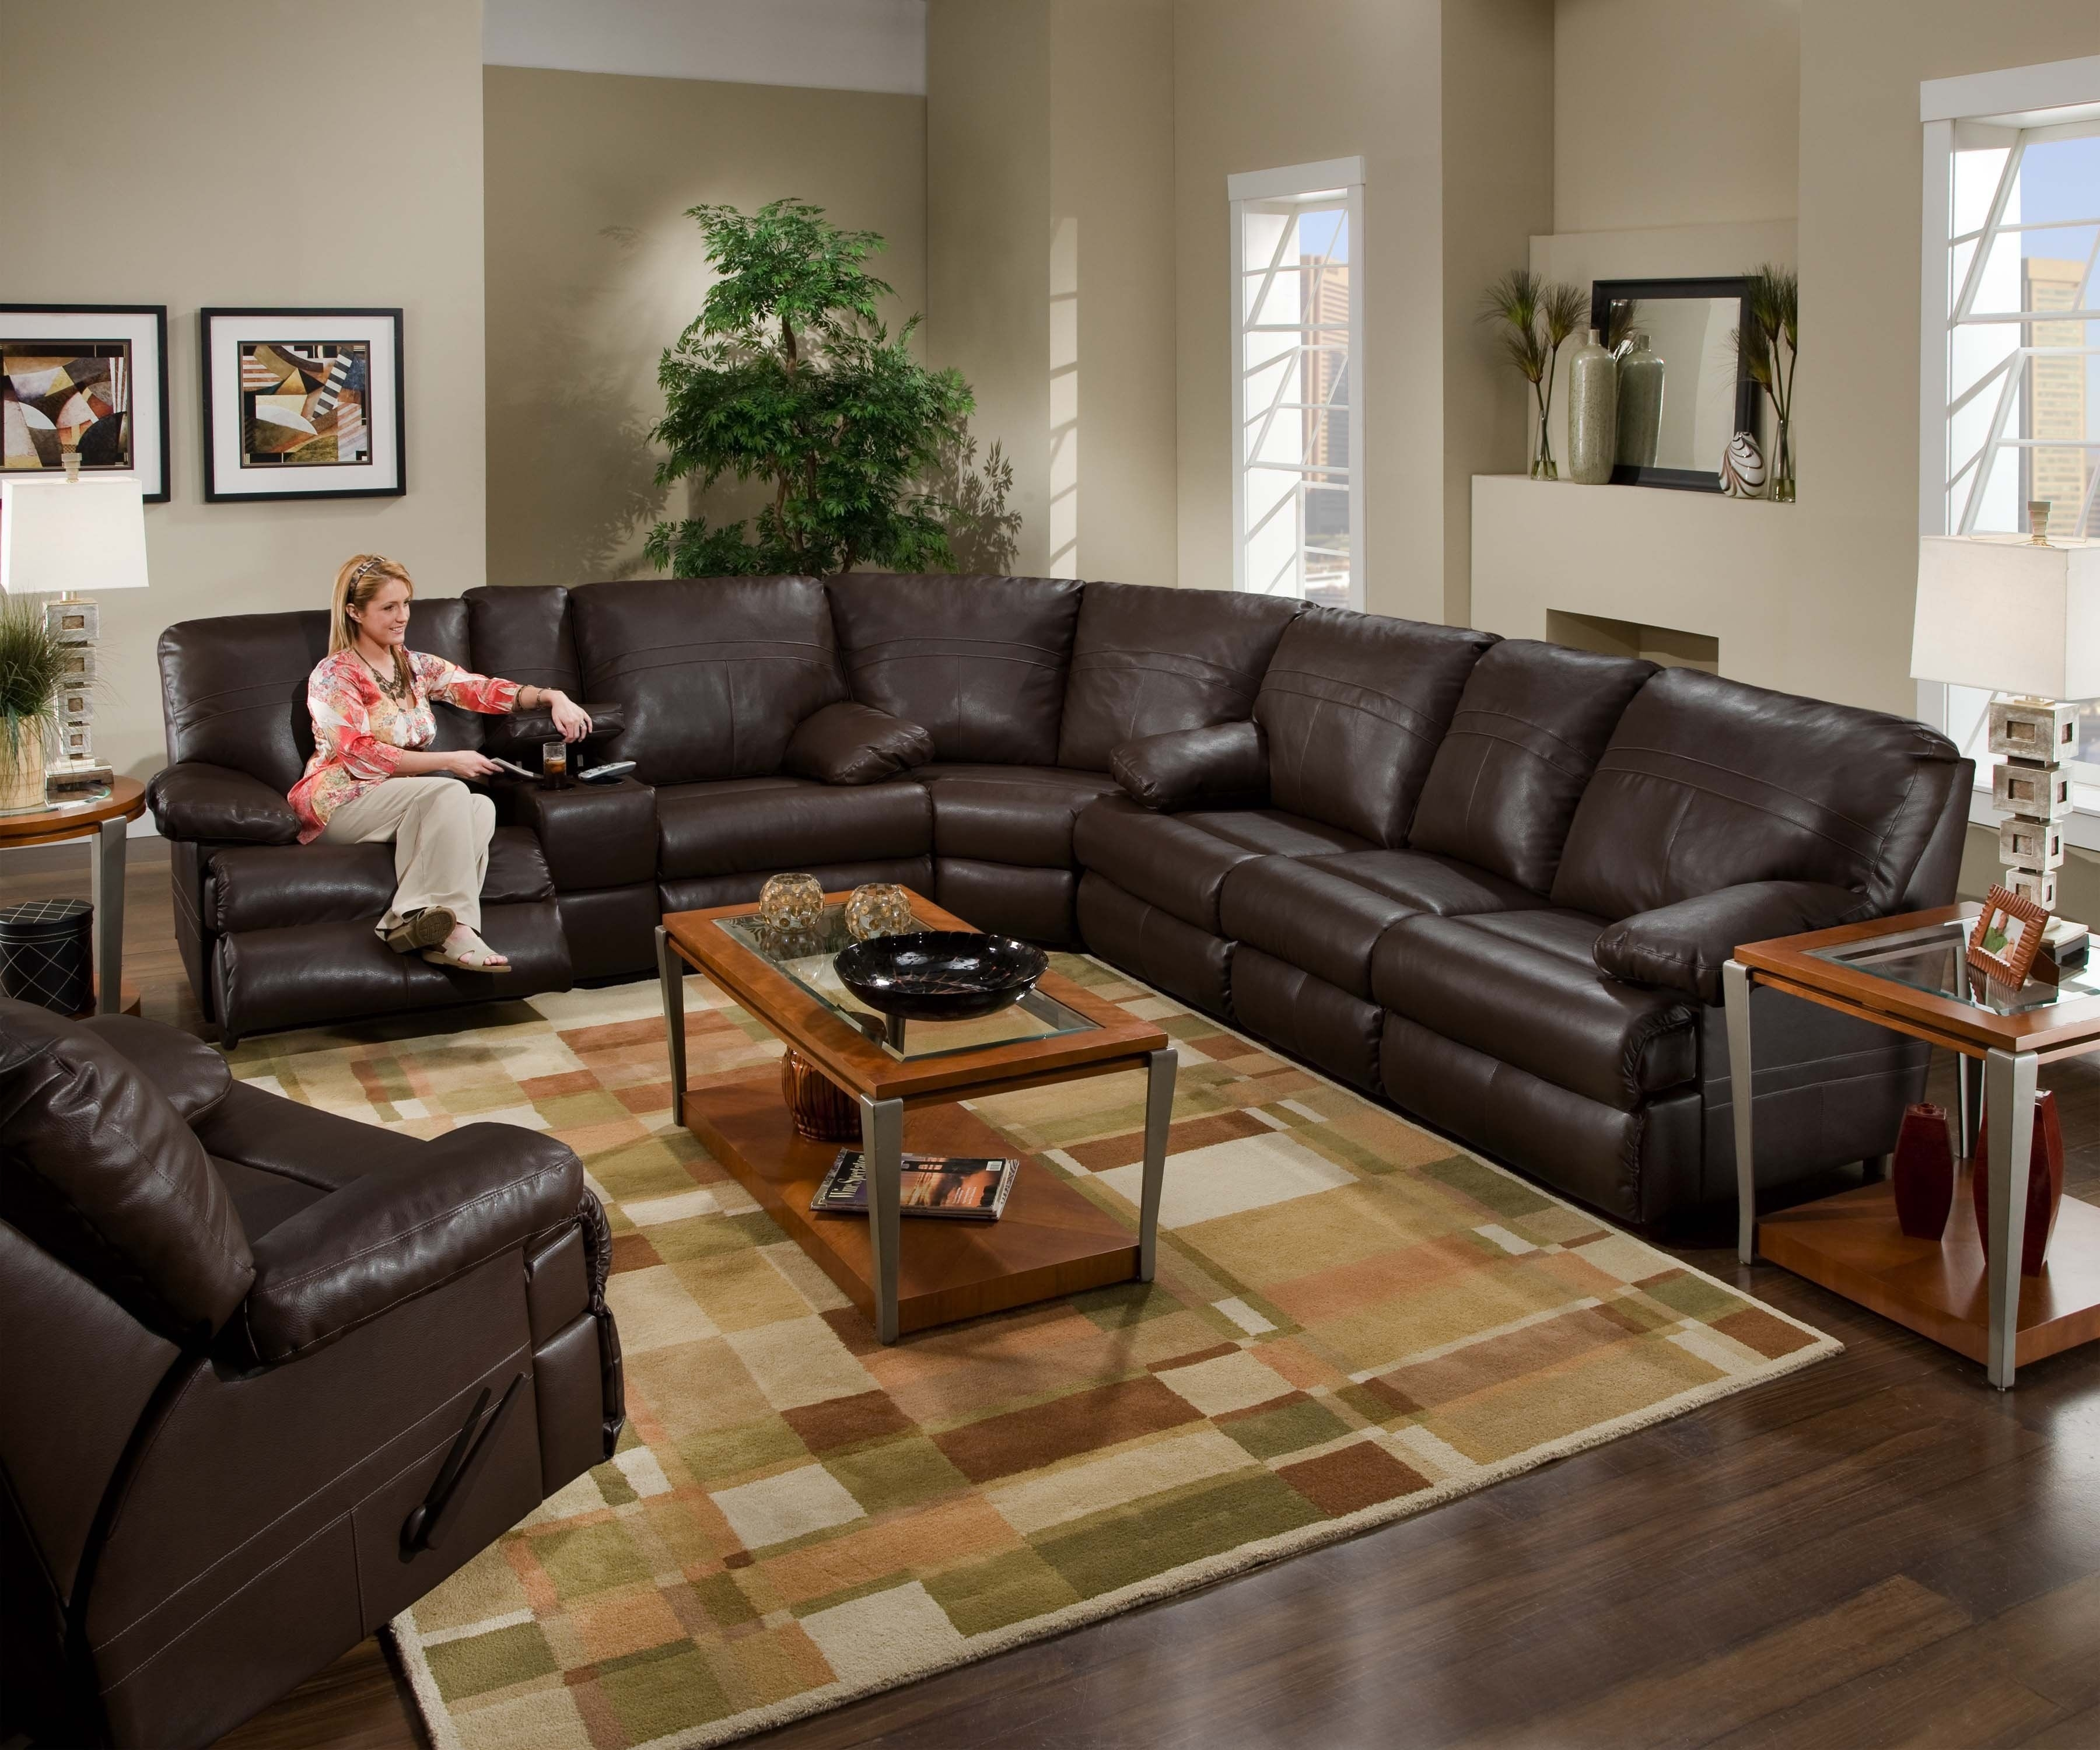 Sectional Leather Couch With Recliners. (View 6 of 10)